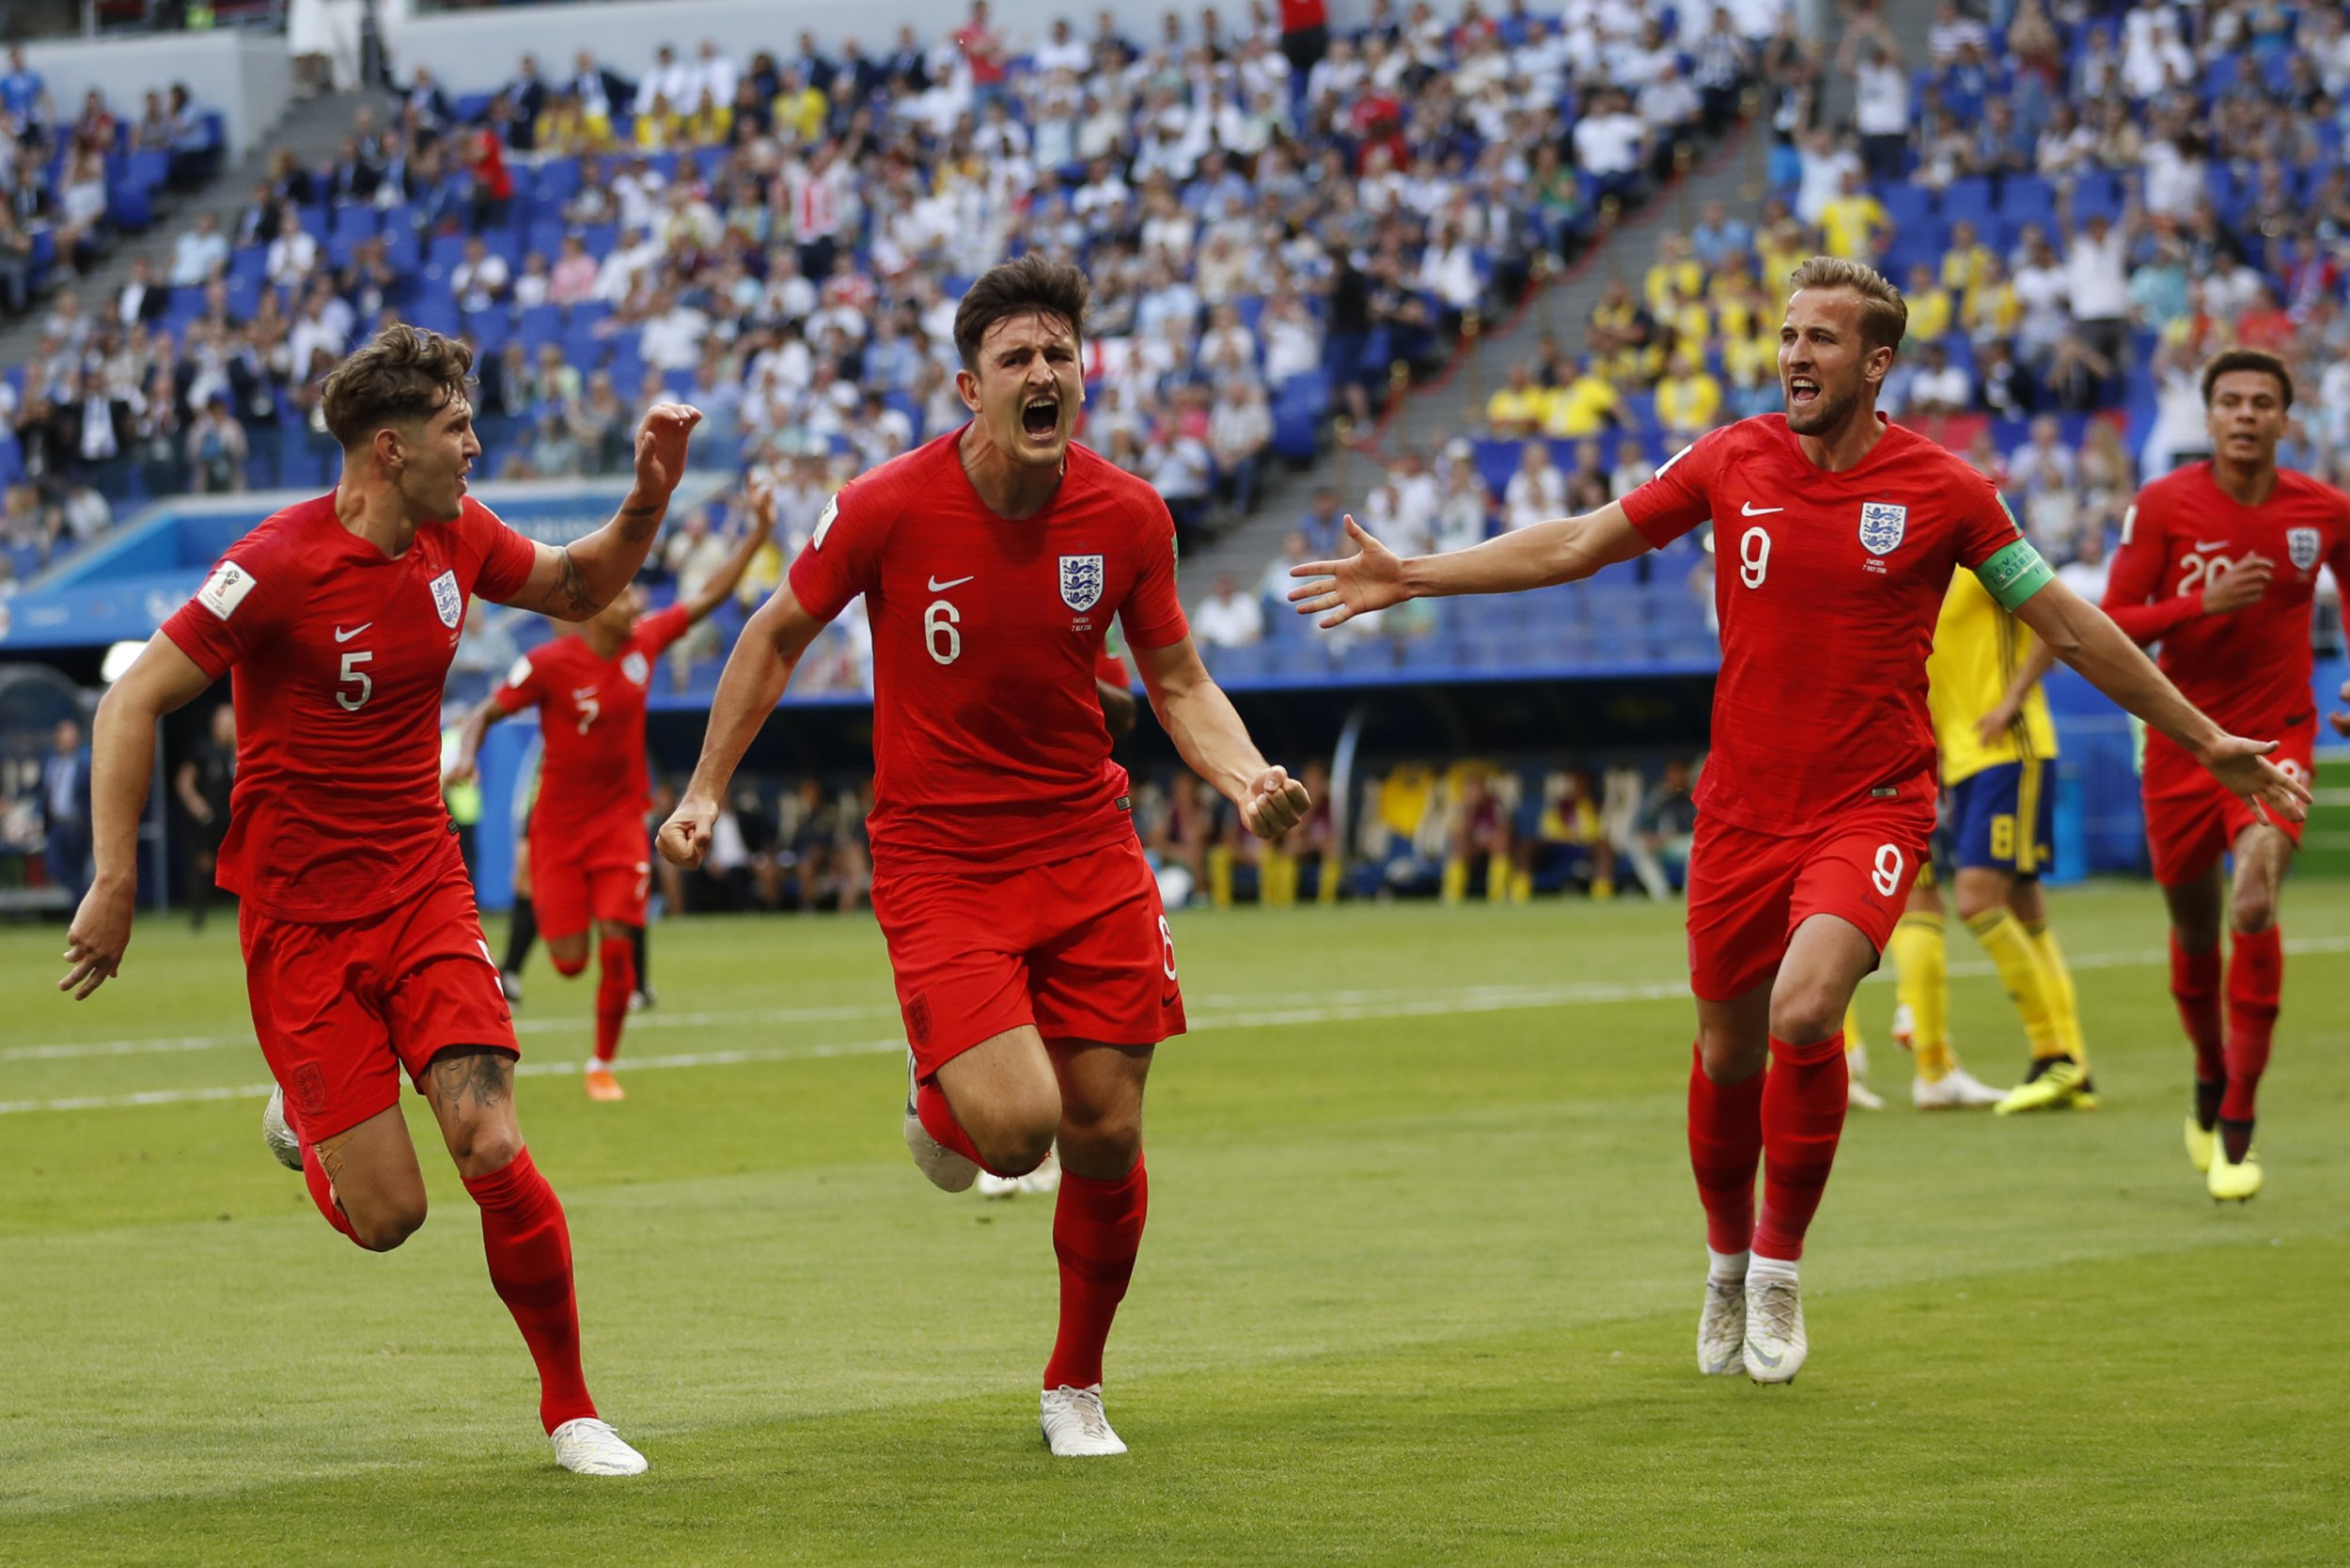 England's Harry Maguire shouts as he celebrates after scoring his side opening goal during the quarterfinal match between Sweden and England at the 2018 soccer World Cup in the Samara Arena, in Samara, Russia, Saturday, July 7, 2018. (AP Photo/Francisco Seco)